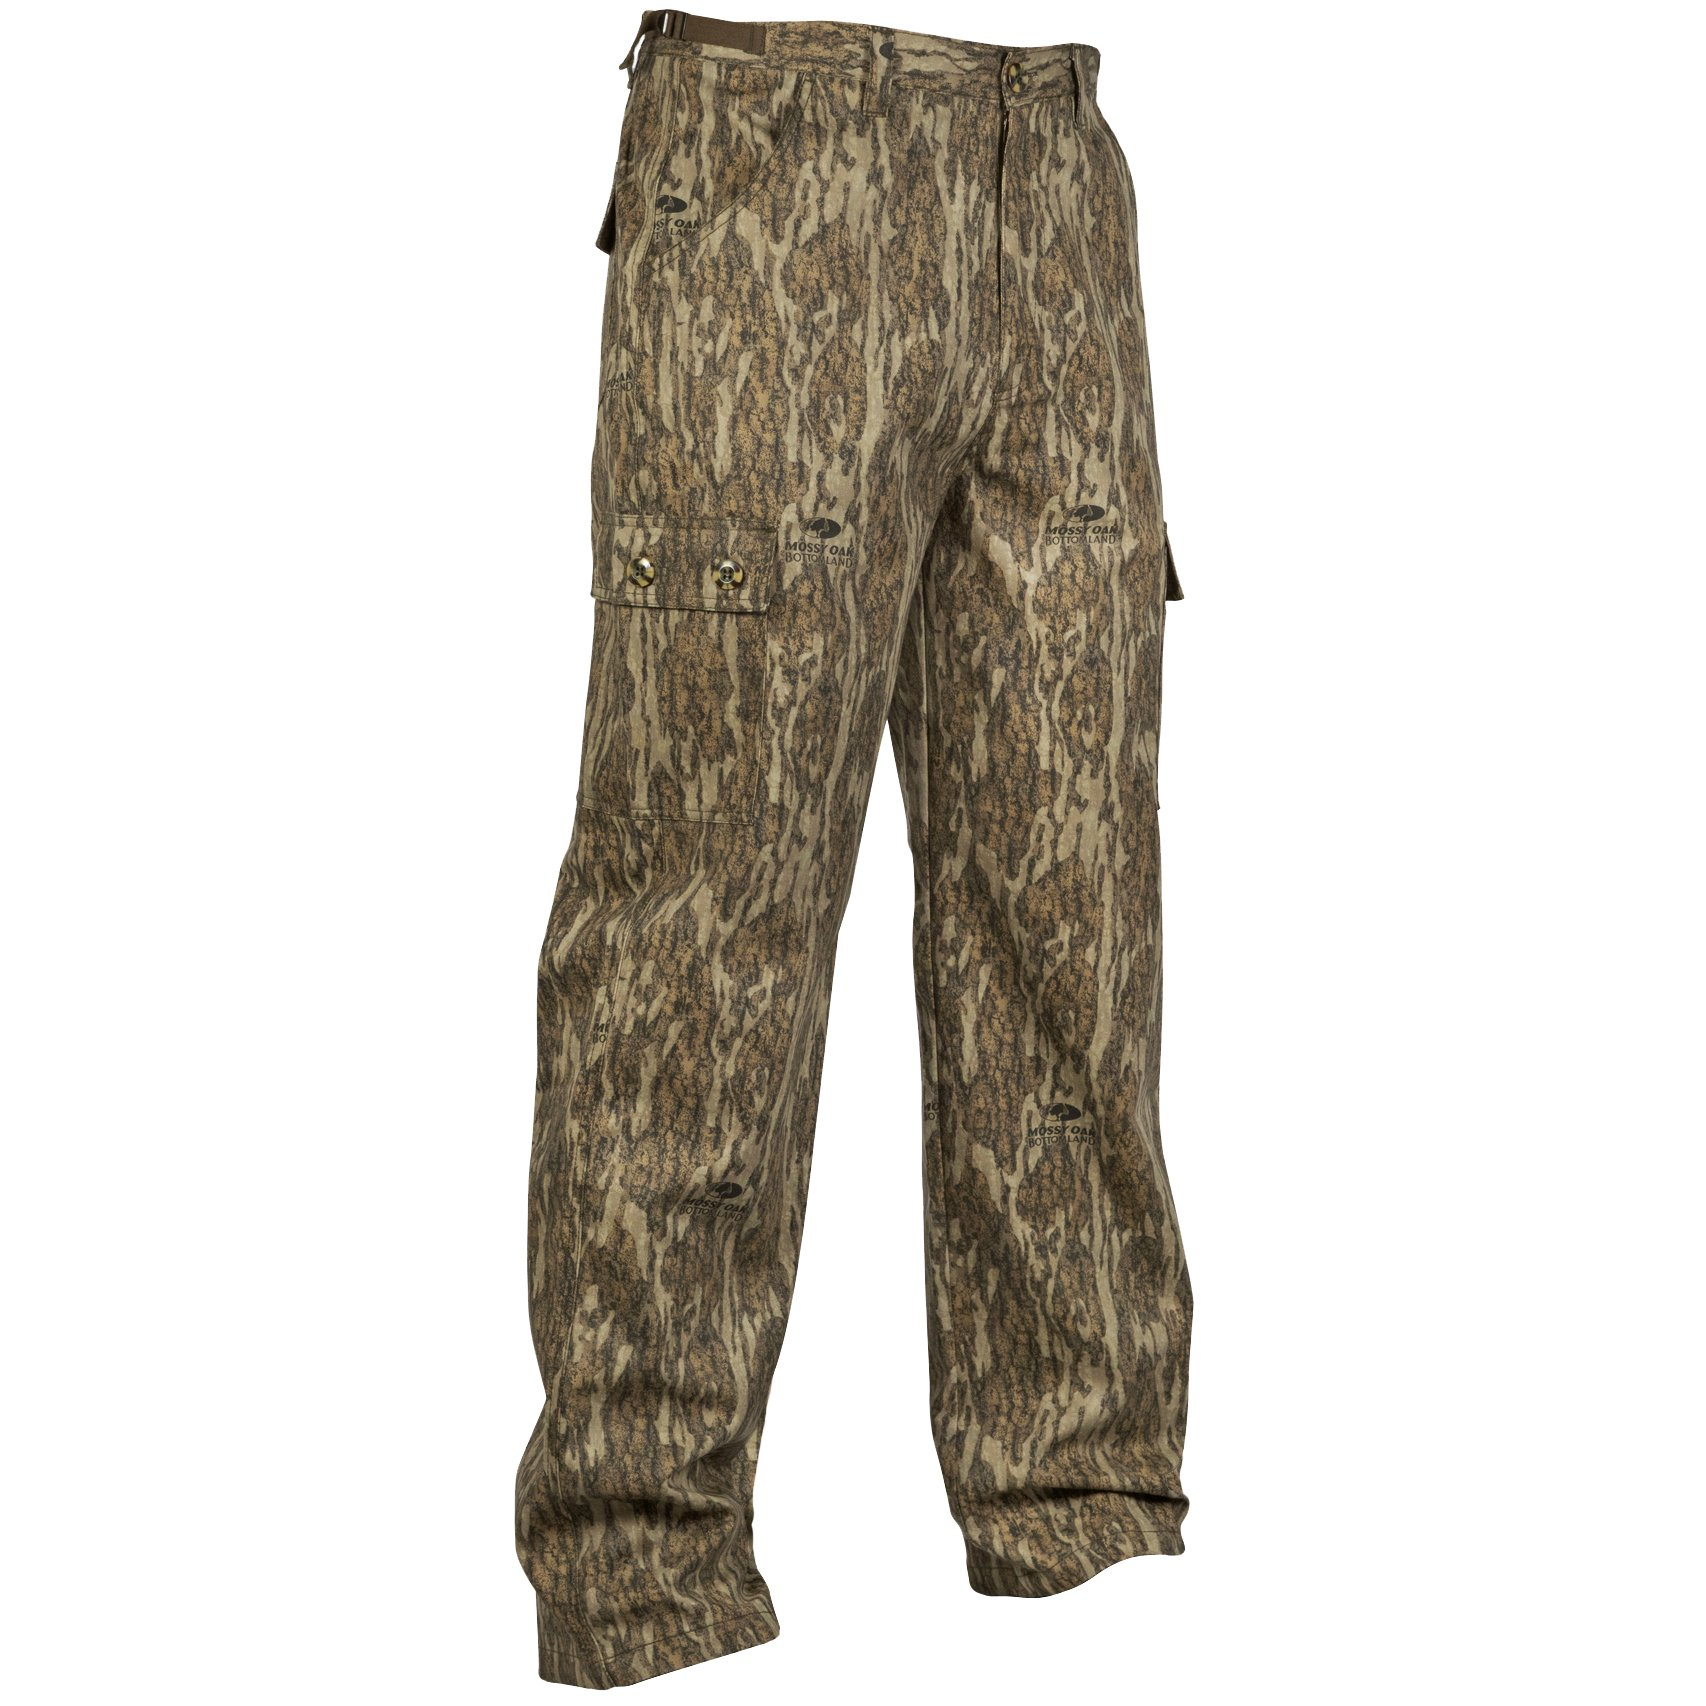 Mossy Oak Camouflage Cotton Mill Hunting Pants | Outdoor Gear